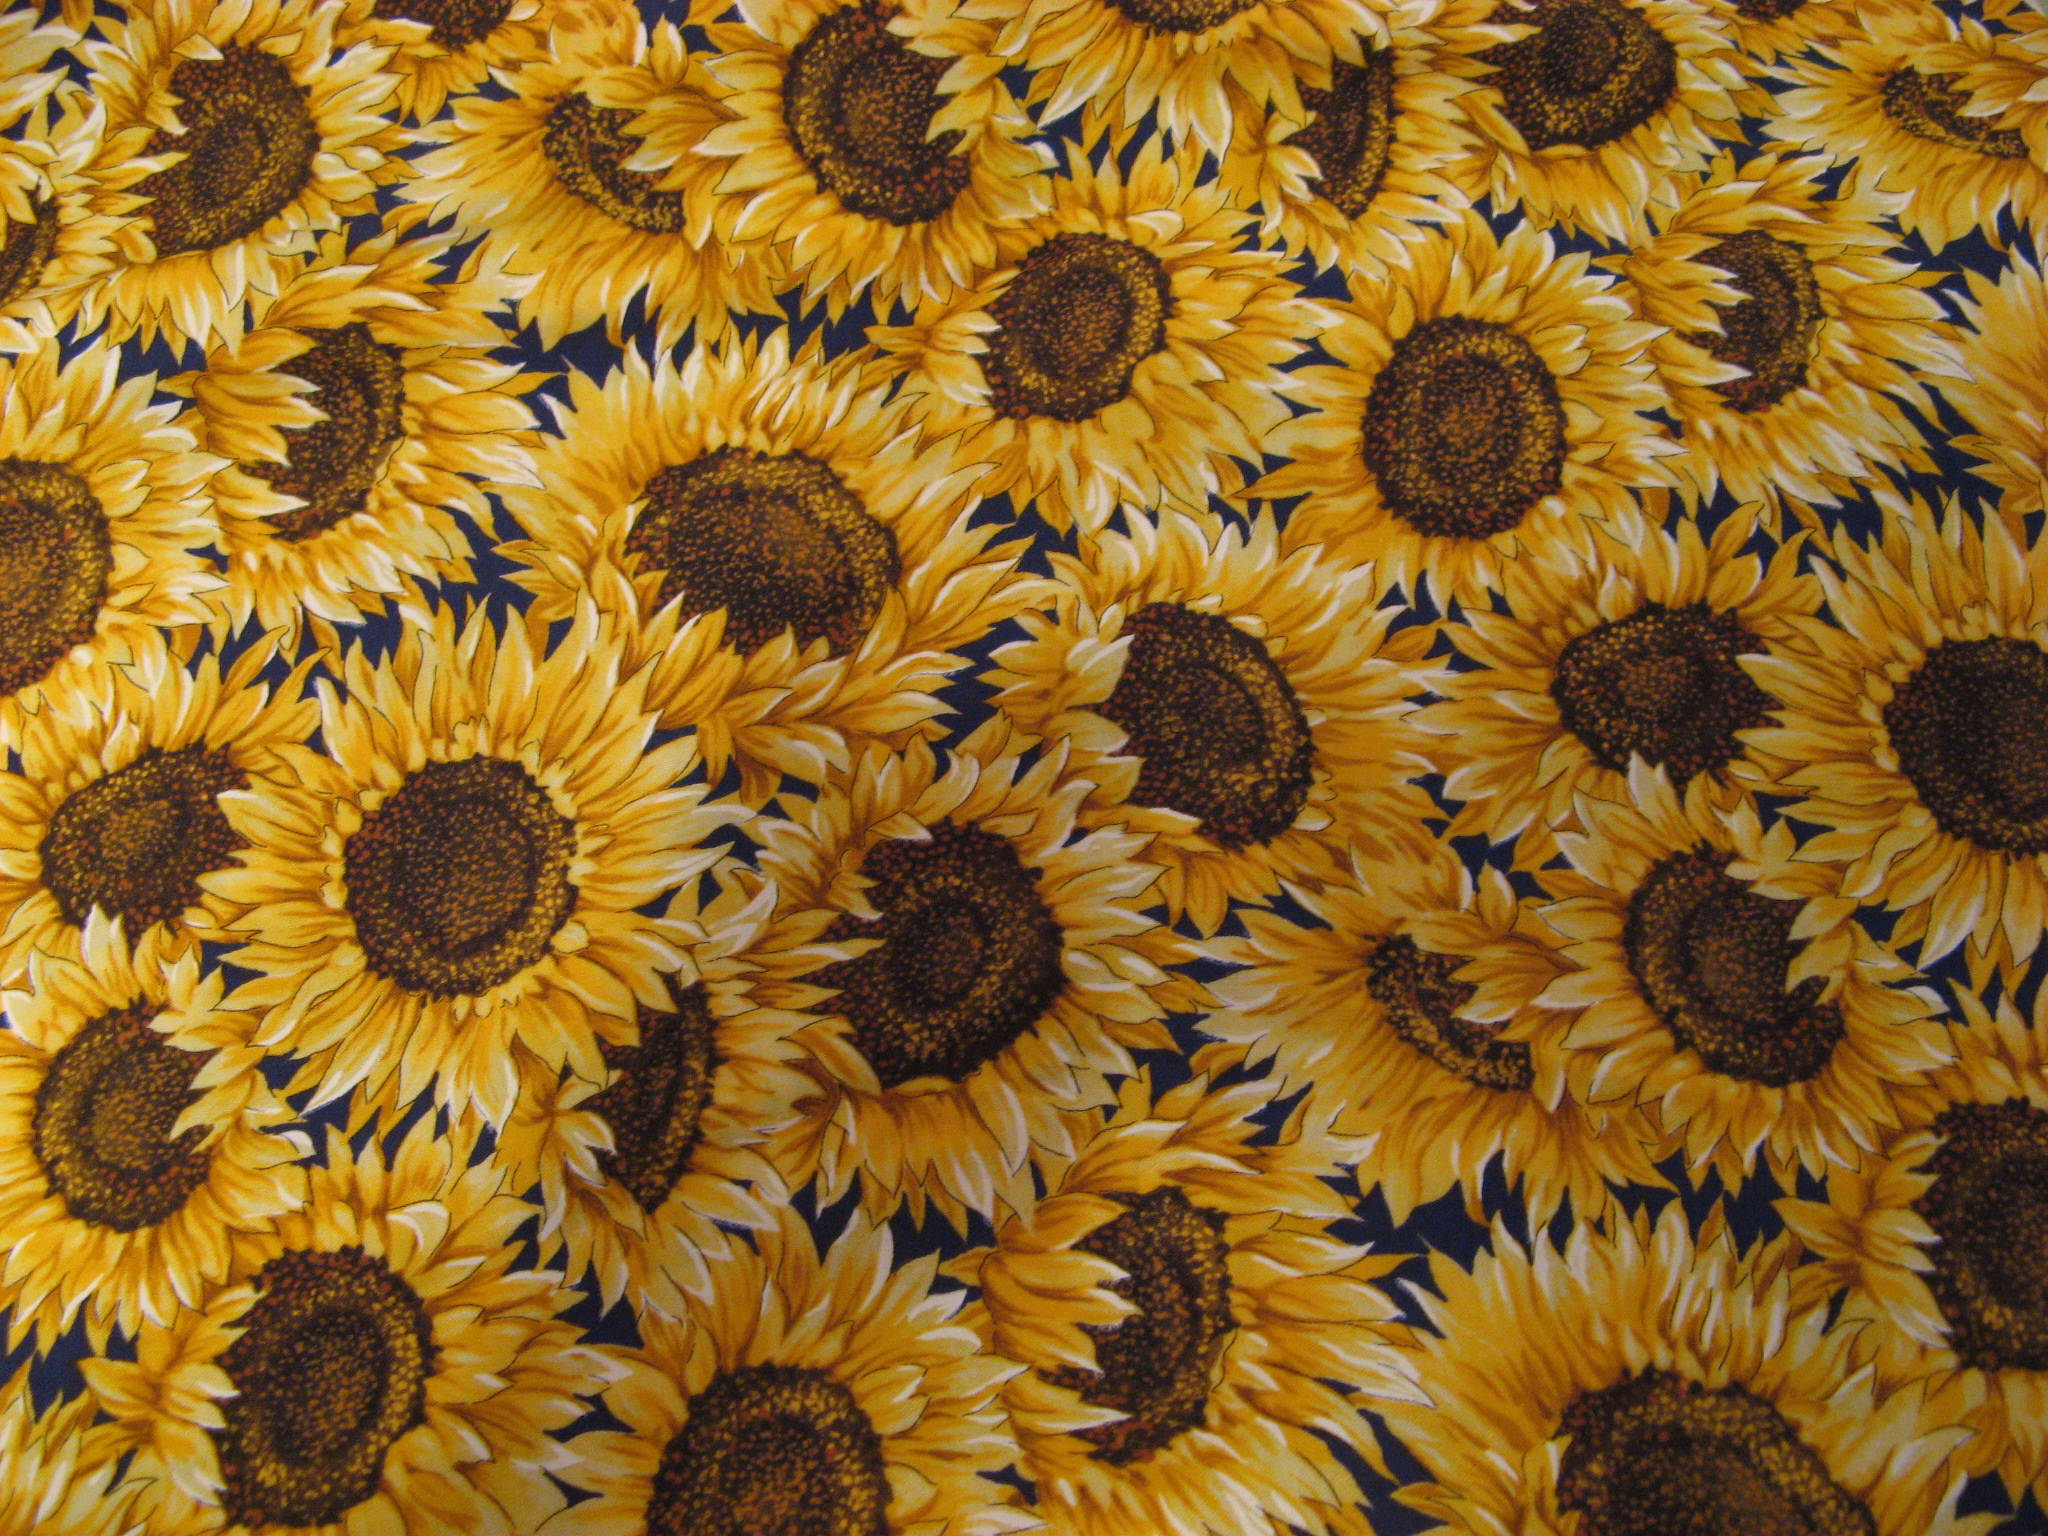 SUNFLOWERS B41 - COTTON